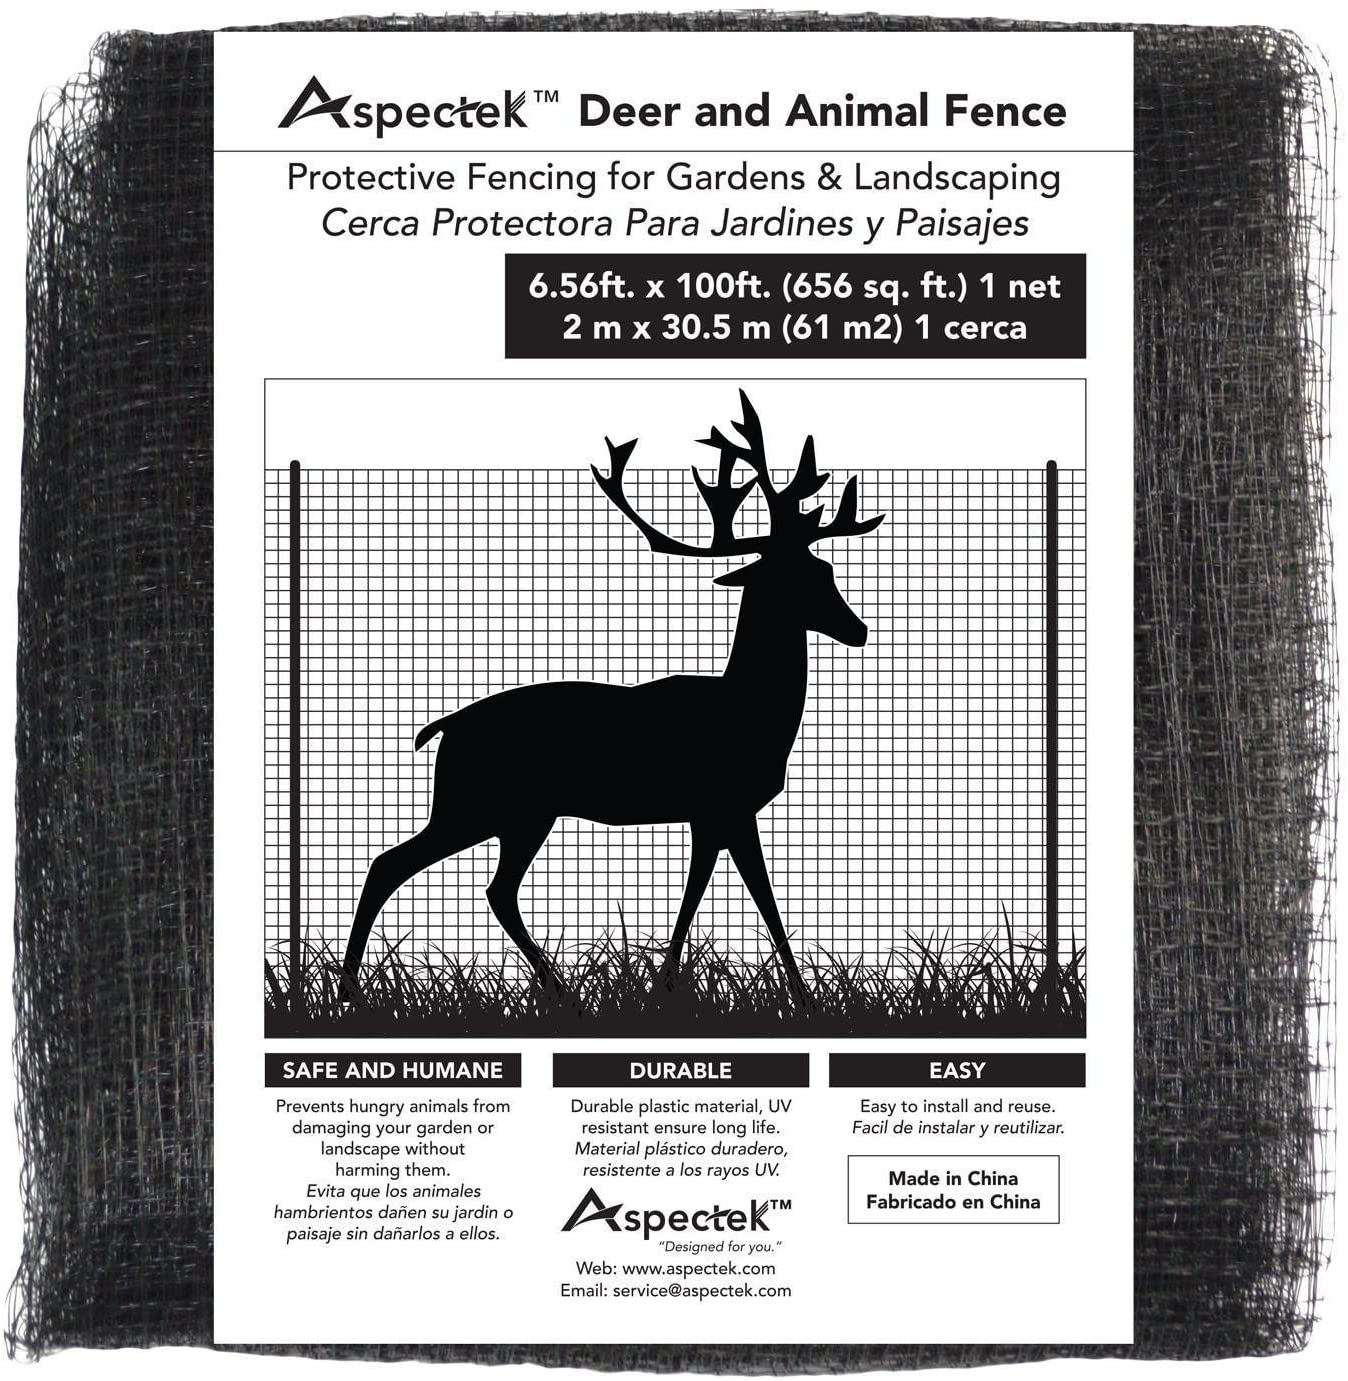 Aspectek Deer and Animal Fence Netting 7ft x 100ft